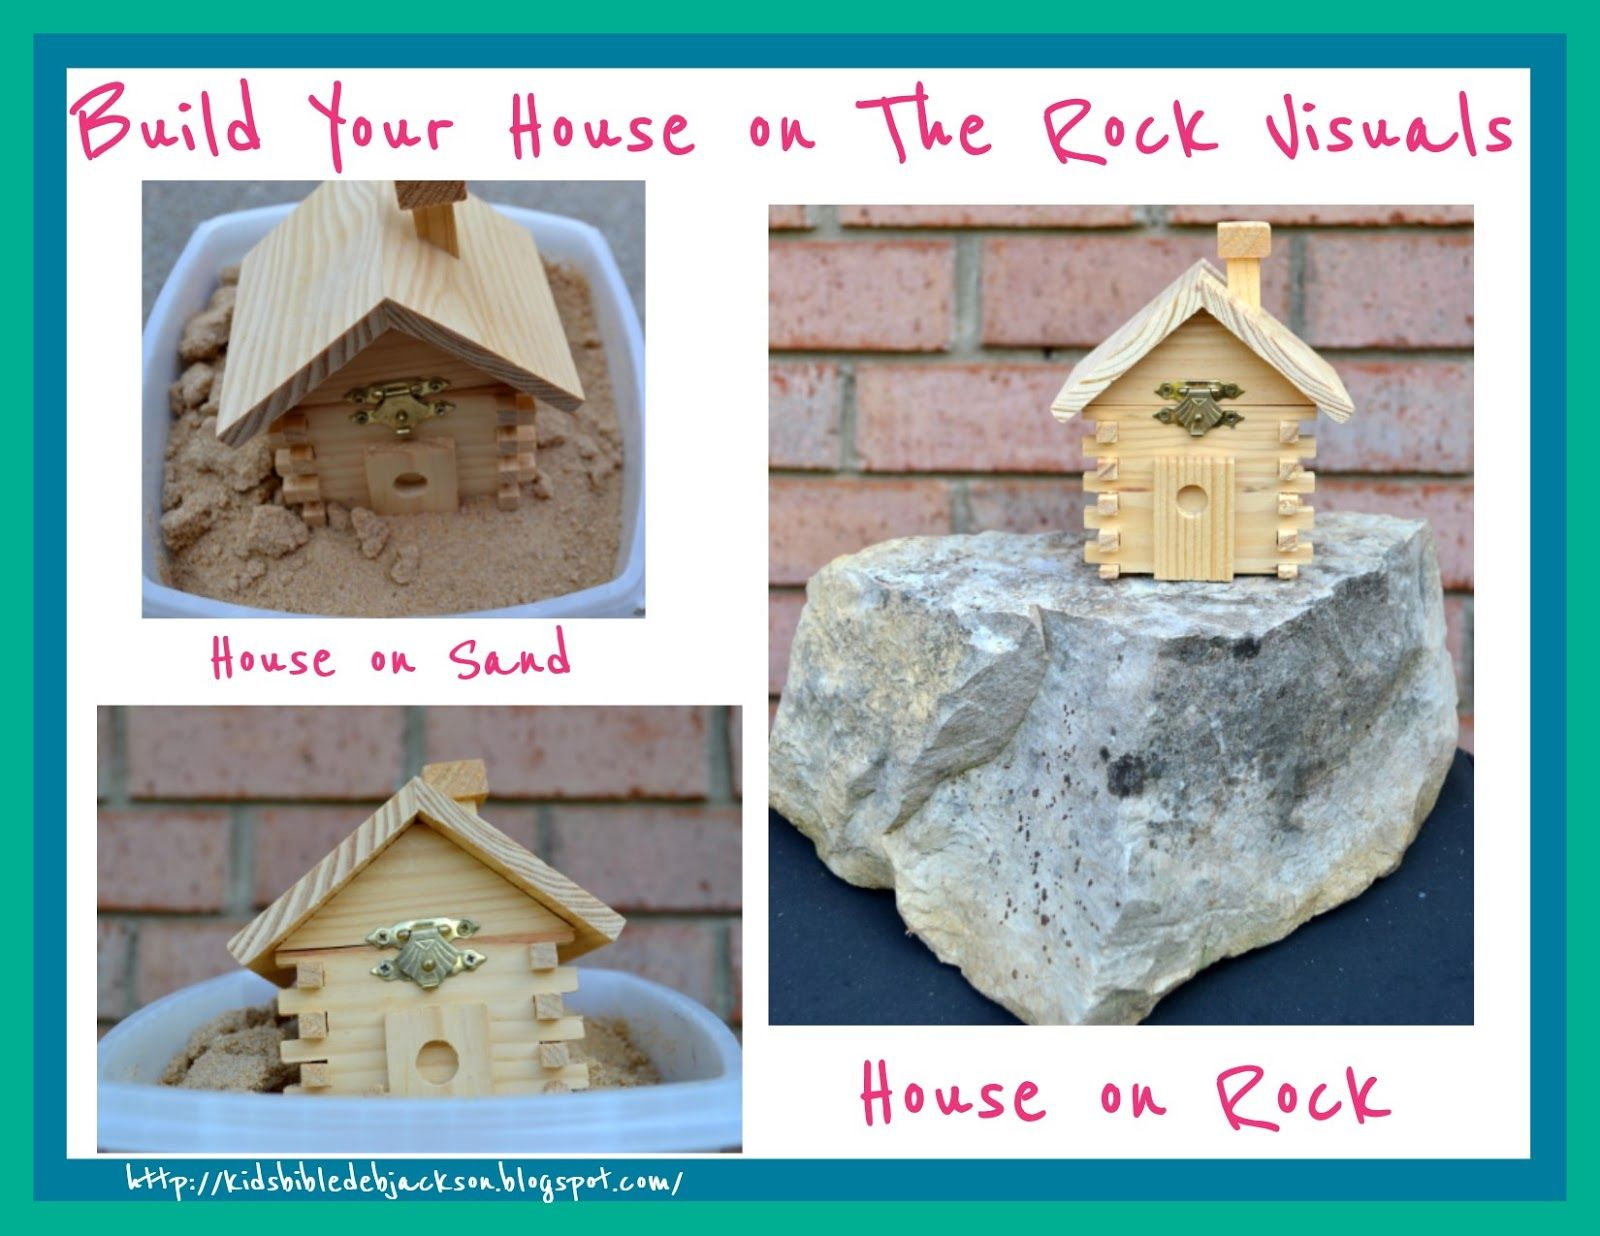 Wise man built his house upon the rock sermon - Parable Of Build Your House On The Rock Be A Light With Teacher S Visuals